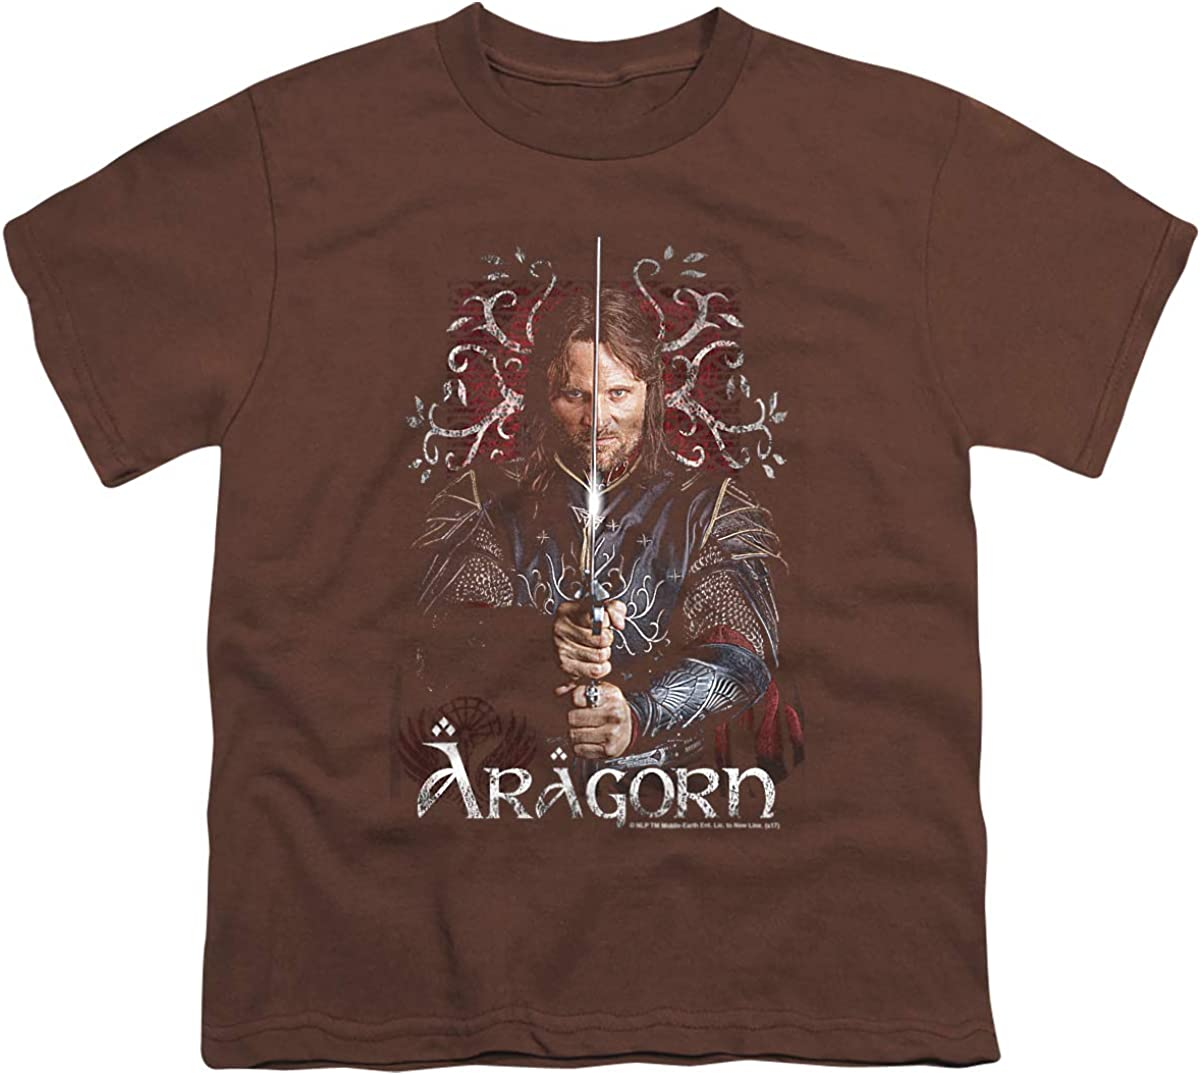 Lord of The Rings Aragorn Unisex Youth T Shirt, Coffee, Small